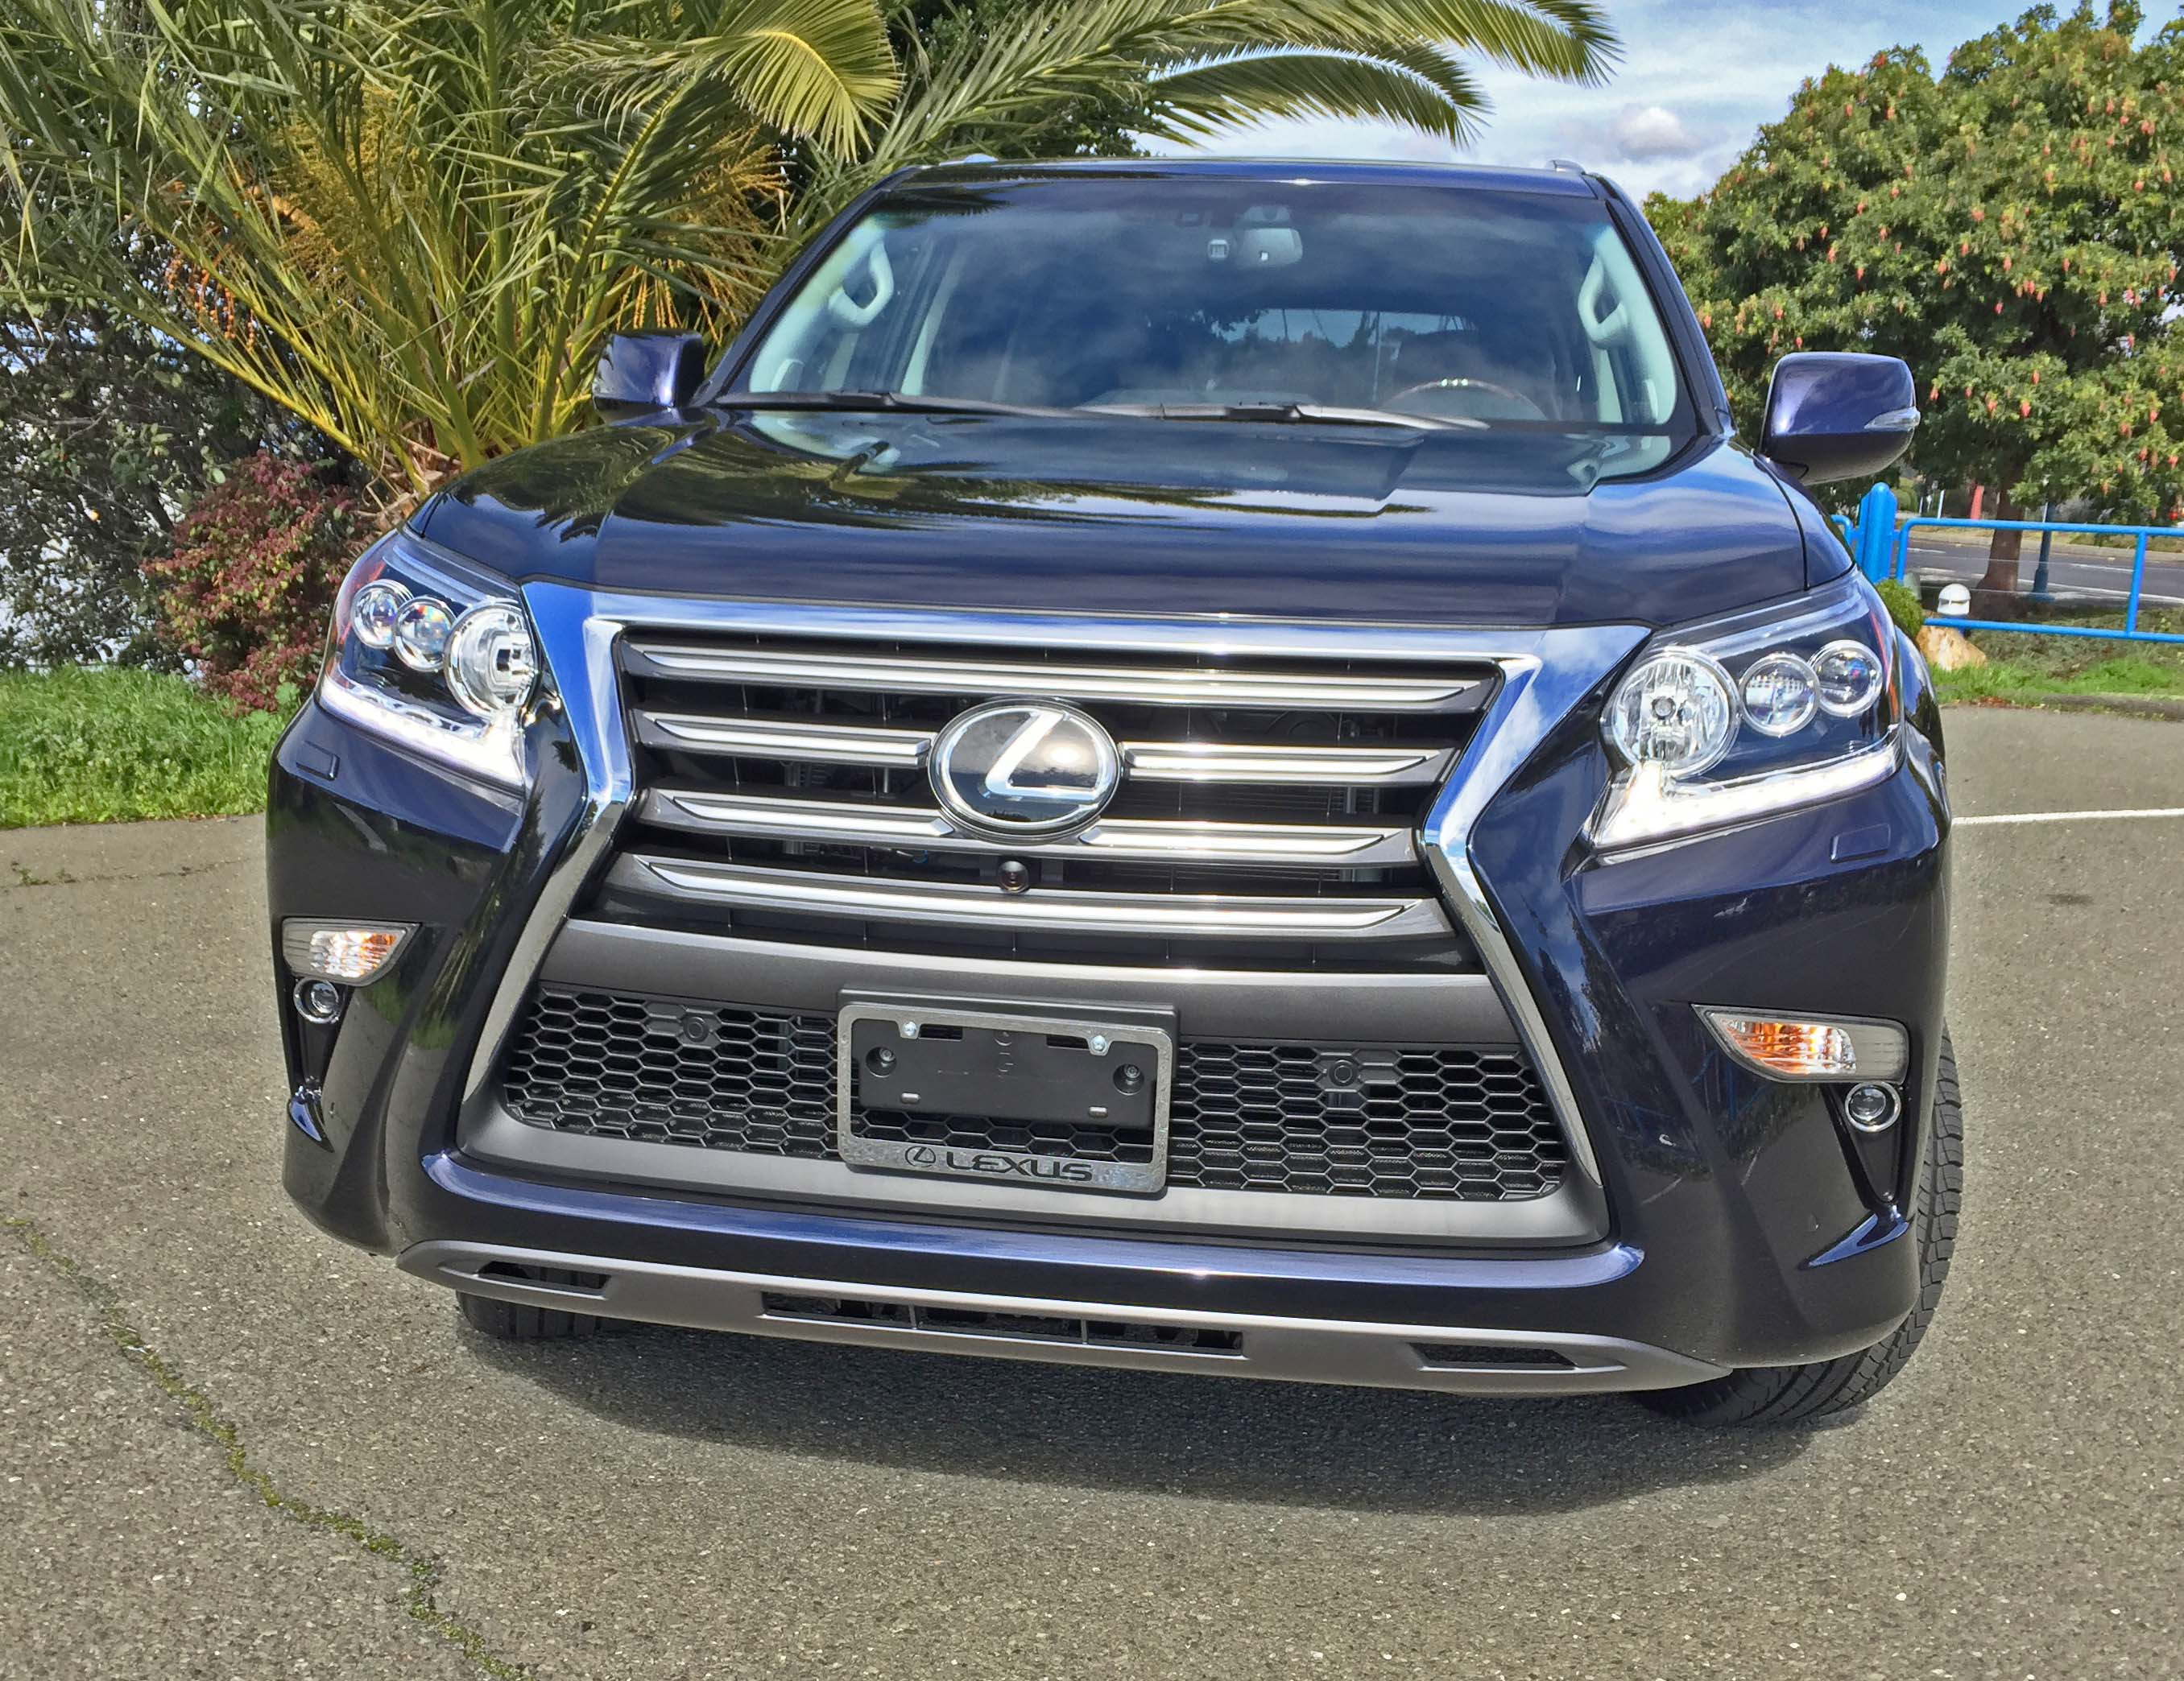 2019 Lexus GX 460 Luxury Test Drive | Our Auto Expert